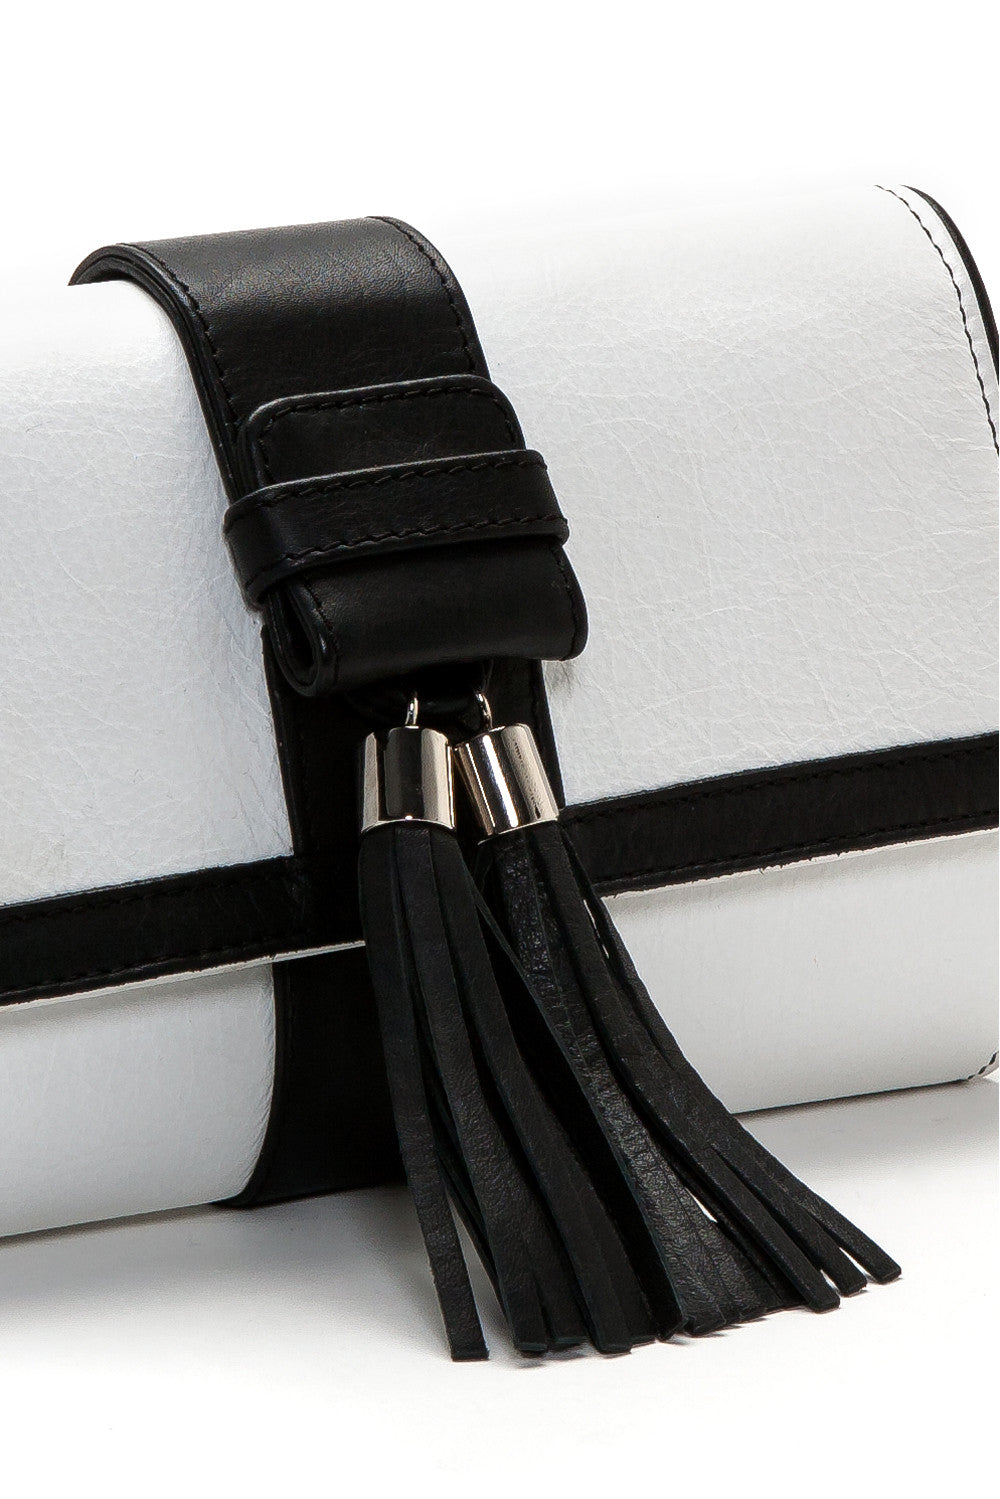 Black and White Tasseled 'Lauren' Small Shoulder Bag | Mel Boteri | Detail View